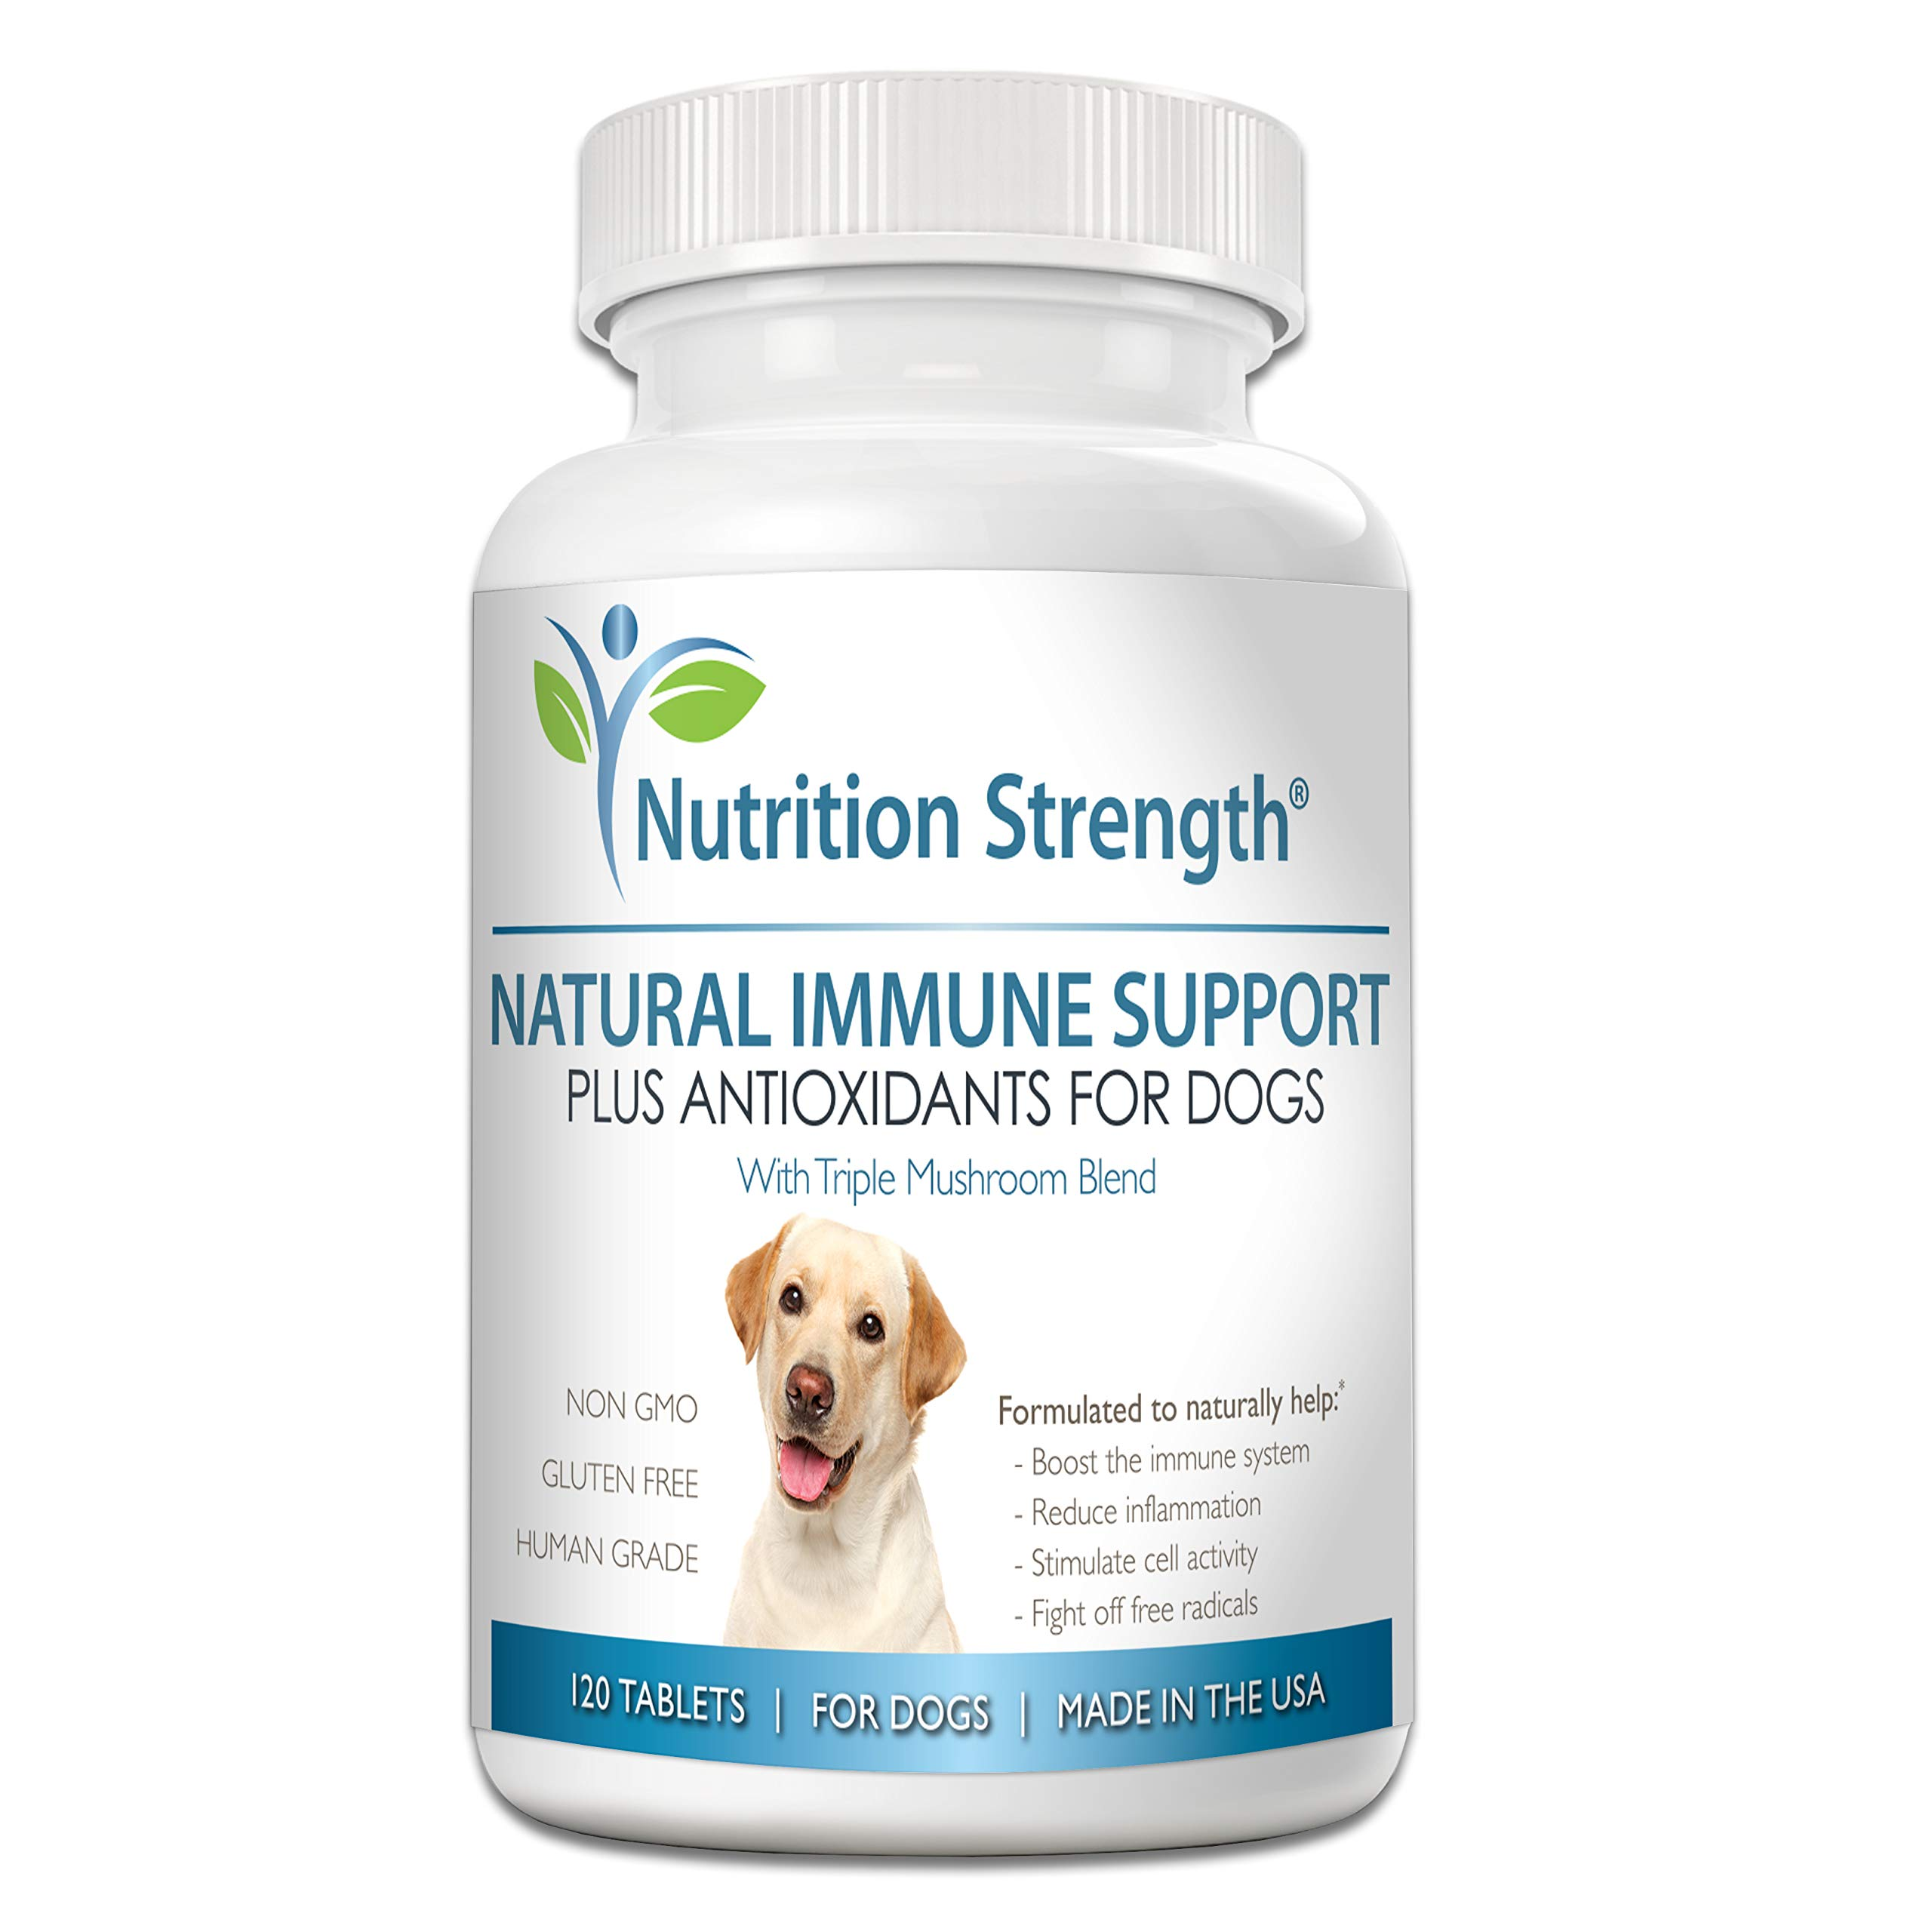 Nutrition Strength Immune Support for Dogs Plus Antioxidant, Reishi, Shiitake, Maitake, Turkey Tail Mushrooms for Dogs, with Coenzyme Q10, Nutritional Support for Cancer in Dogs, 120 Chewable Tablets by Nutrition Strength